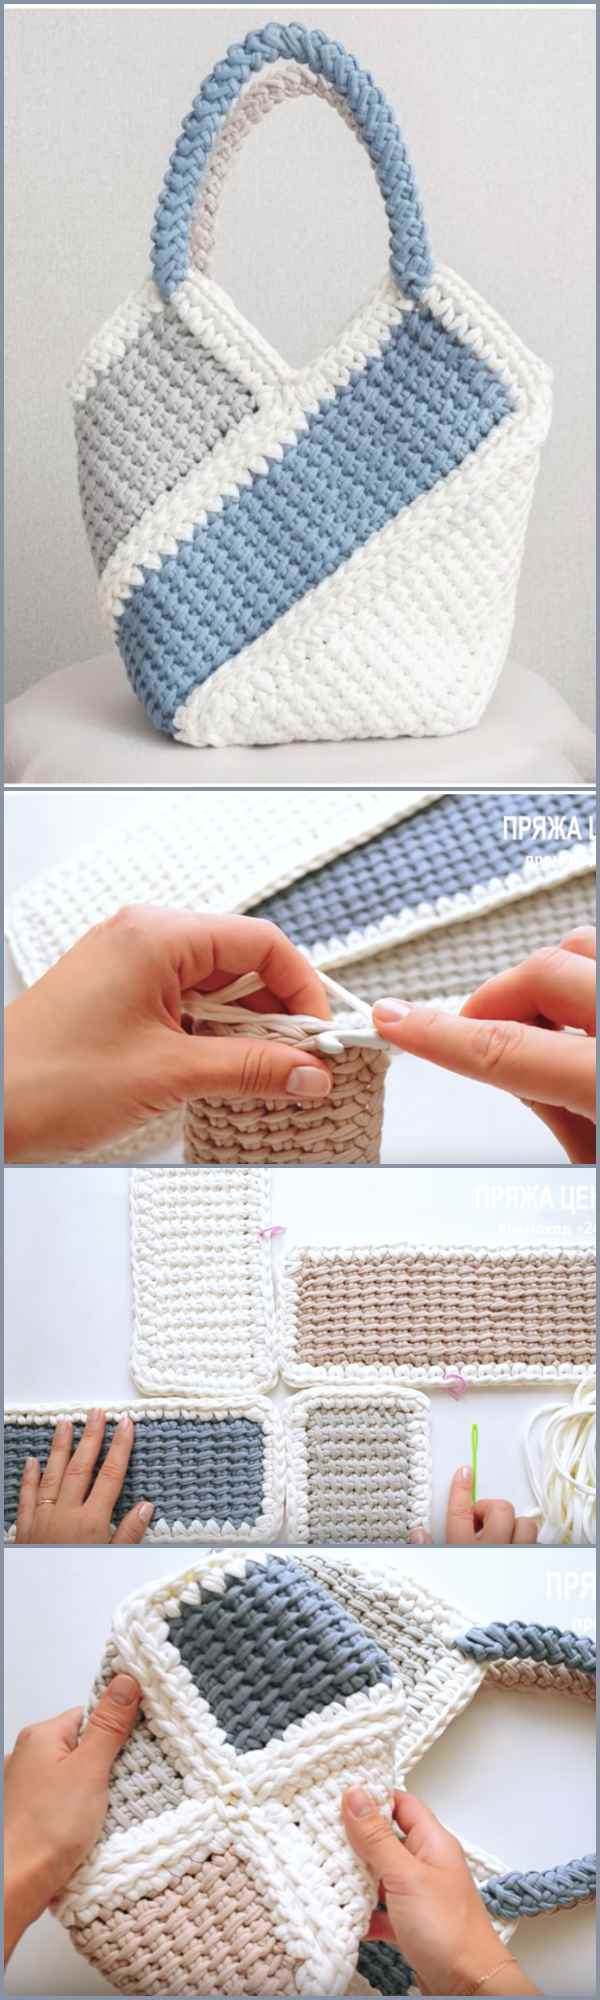 Breeze Bag Free Crochet Pattern